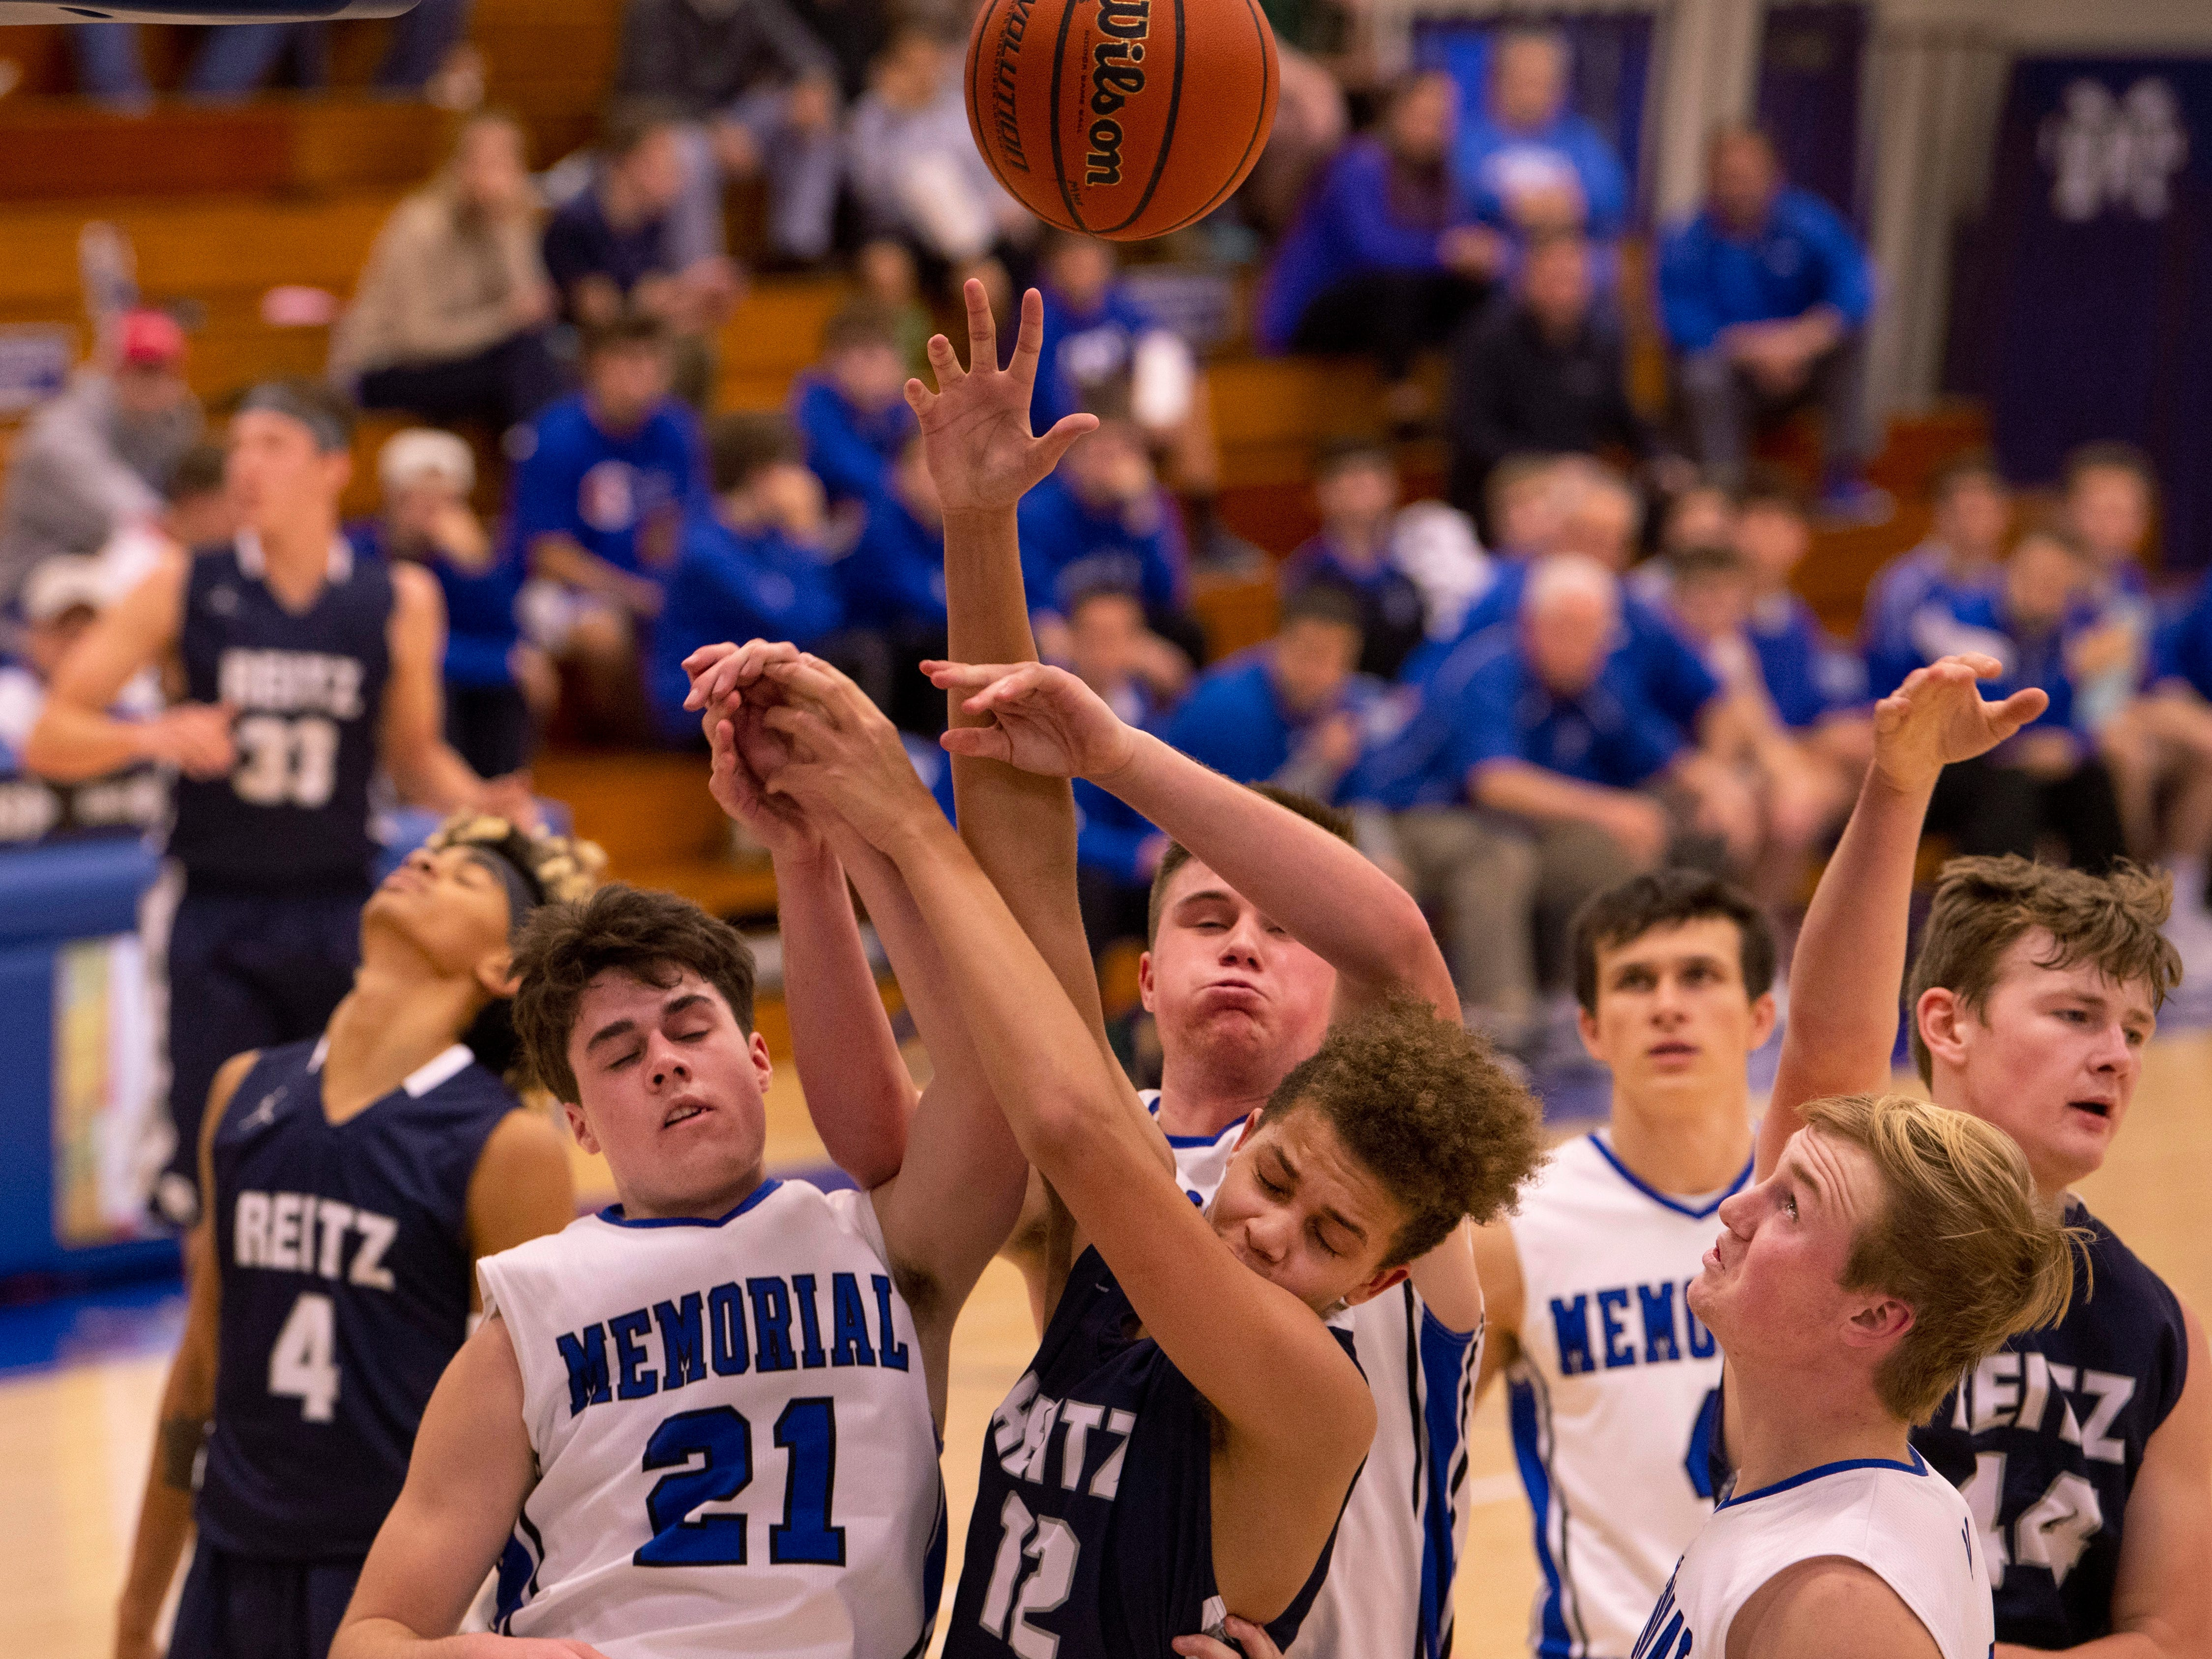 Memorial and Reitz go for a rebound in the first round of the SIAC Tournament at Memorial High School Tuesday night.